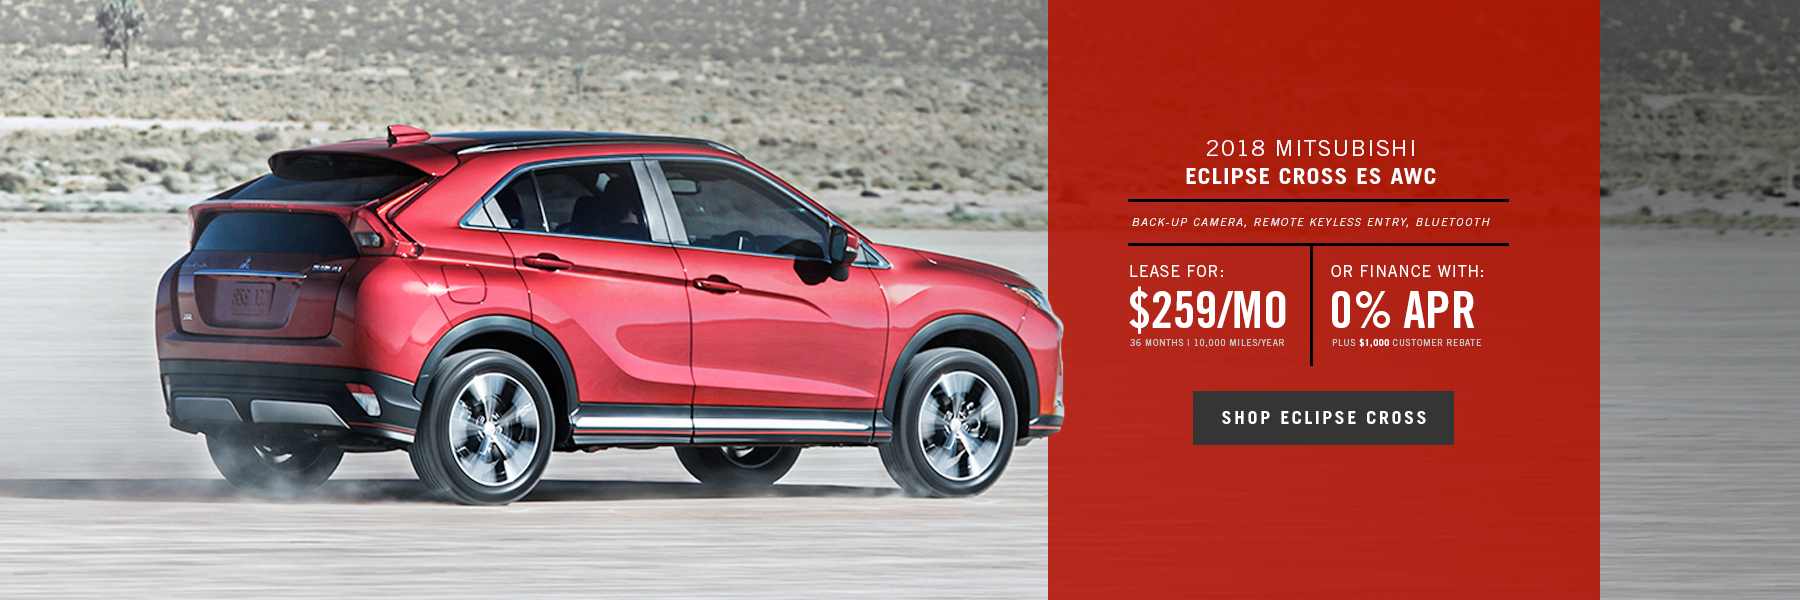 Mitsubishi Eclipse Cross Special Offer